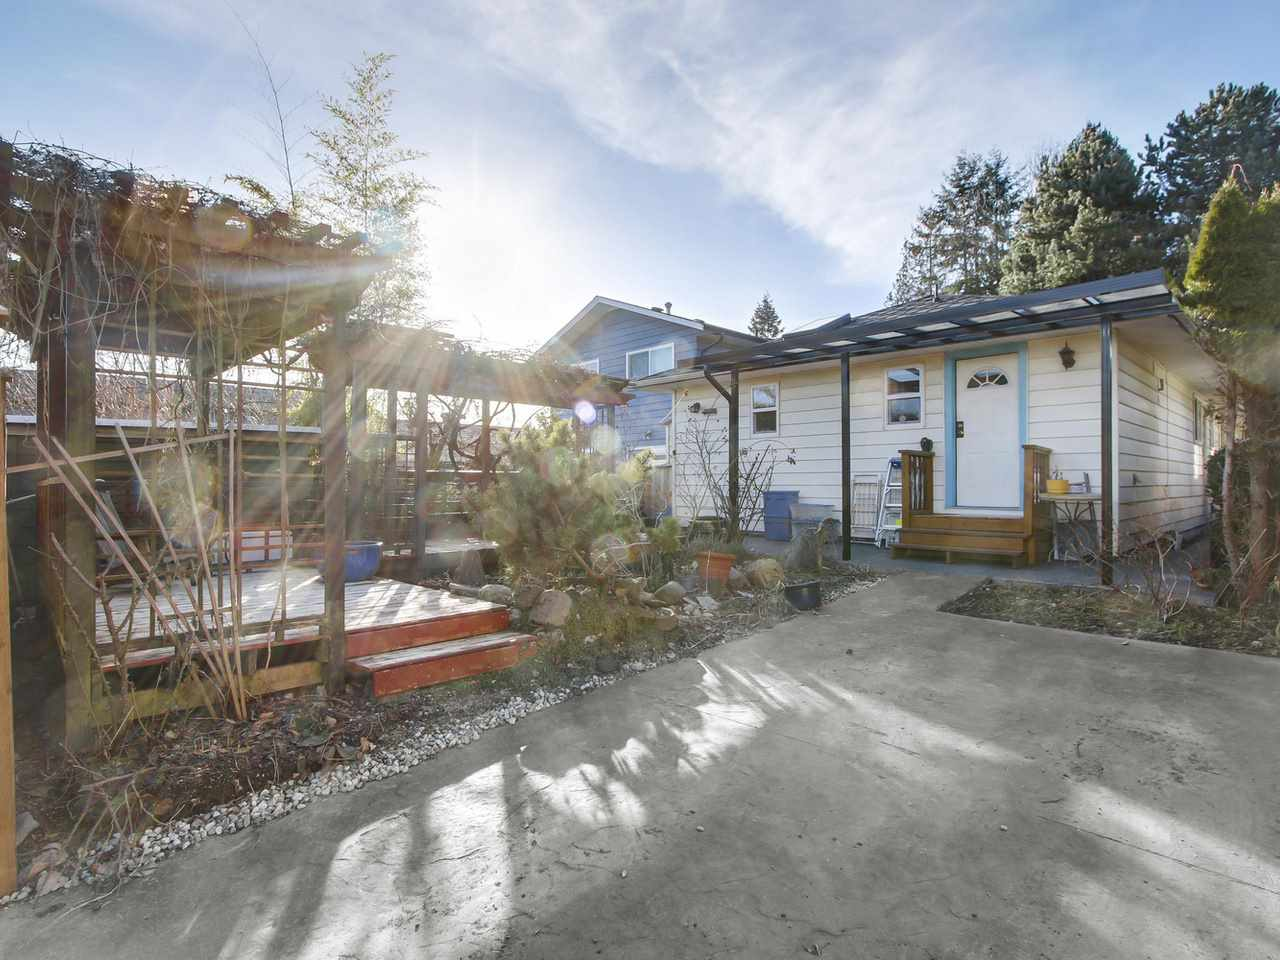 Photo 19: Photos: 1520 MACGOWAN Avenue in North Vancouver: Norgate House for sale : MLS®# R2137032